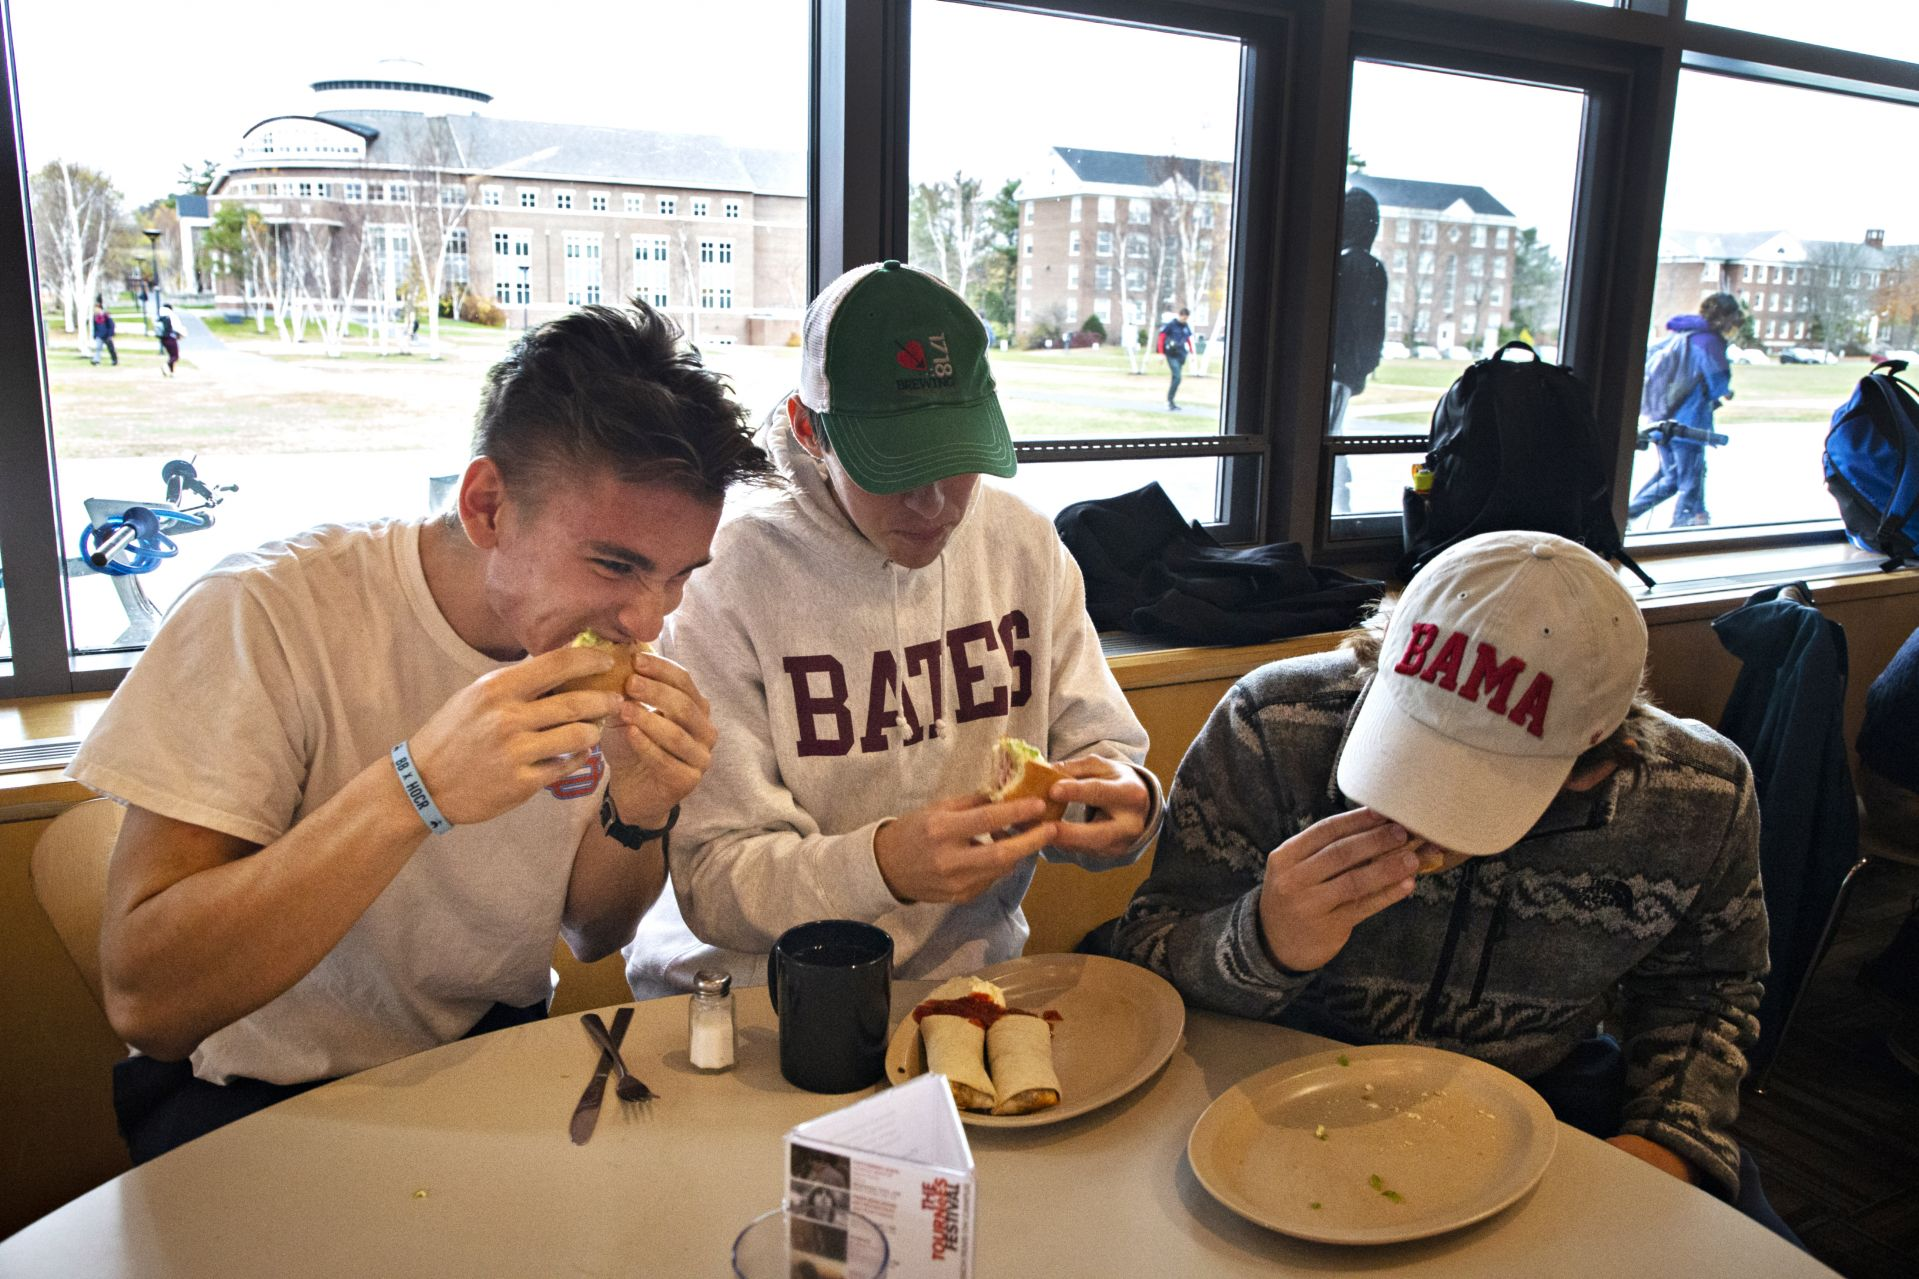 Robert Sobolewski '22 of Chevy Chase, Maryland, Nick Van Ingen '23 of Darien Conn., and William Bolin '23 of Monkton, Maryland., share and eat a Bobcat sandwich while at Commons on November 7, 2019.